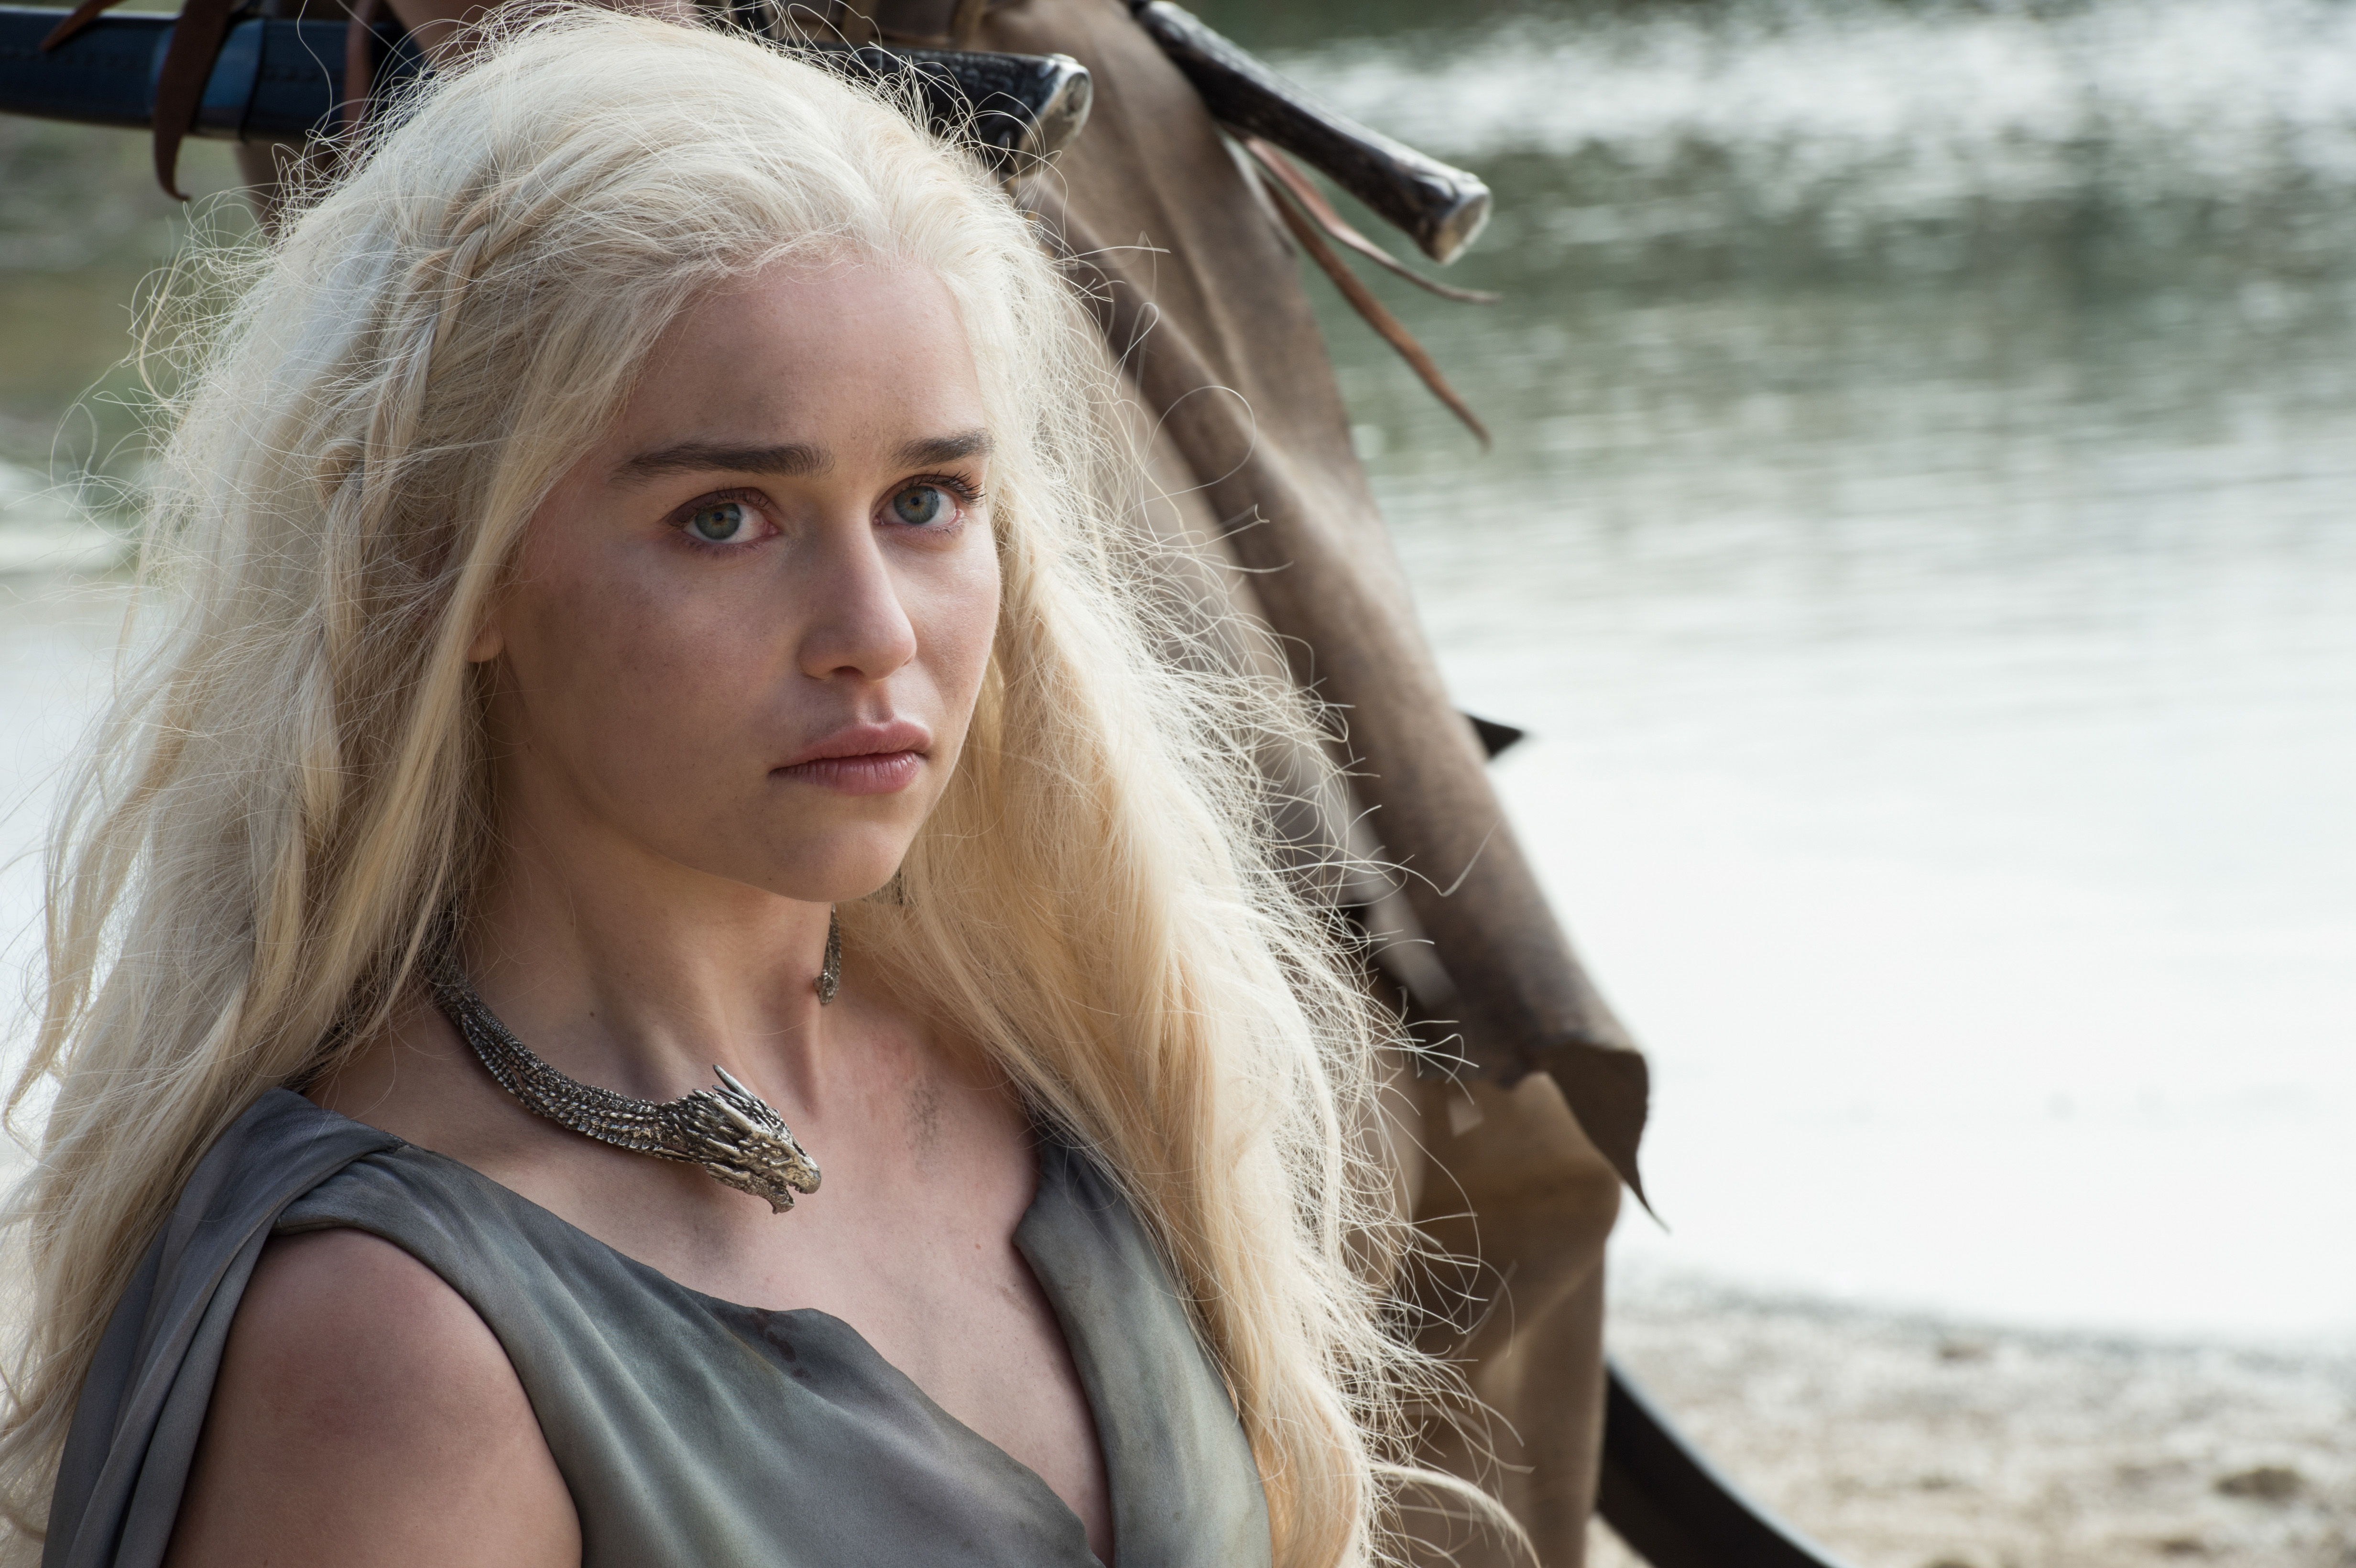 Why I think Game of Thrones will make Daenerys the villain